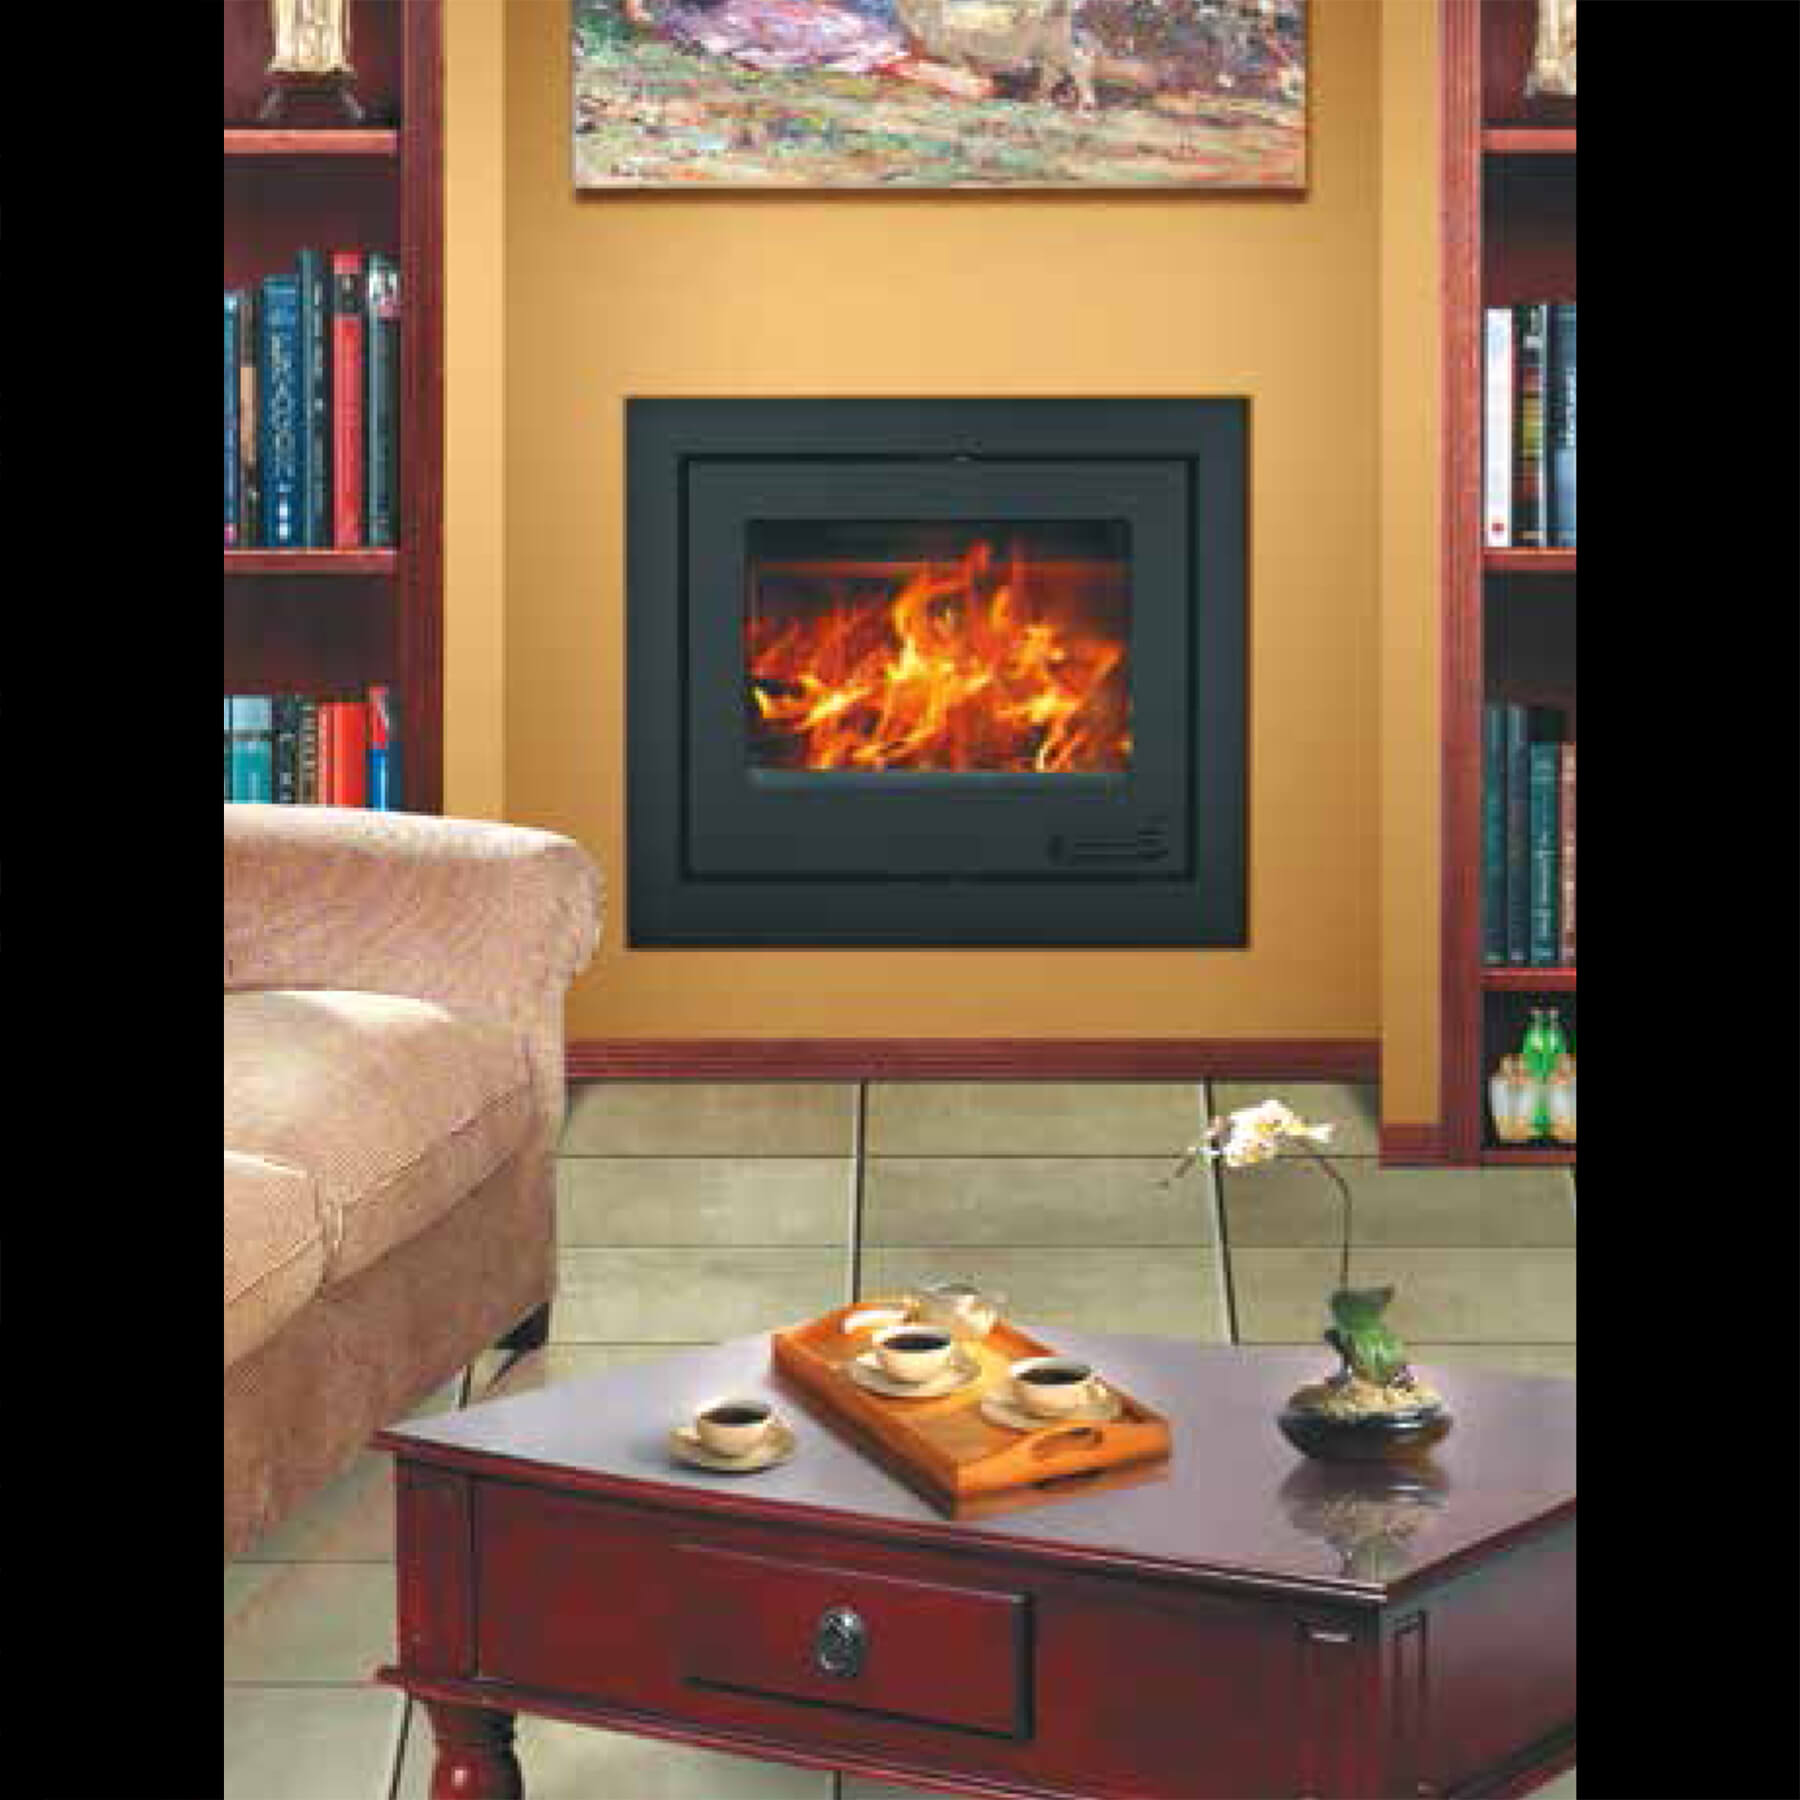 Combustion-Fireplaces-Built-In-10kw-Insert-Convection-Unit-Environment